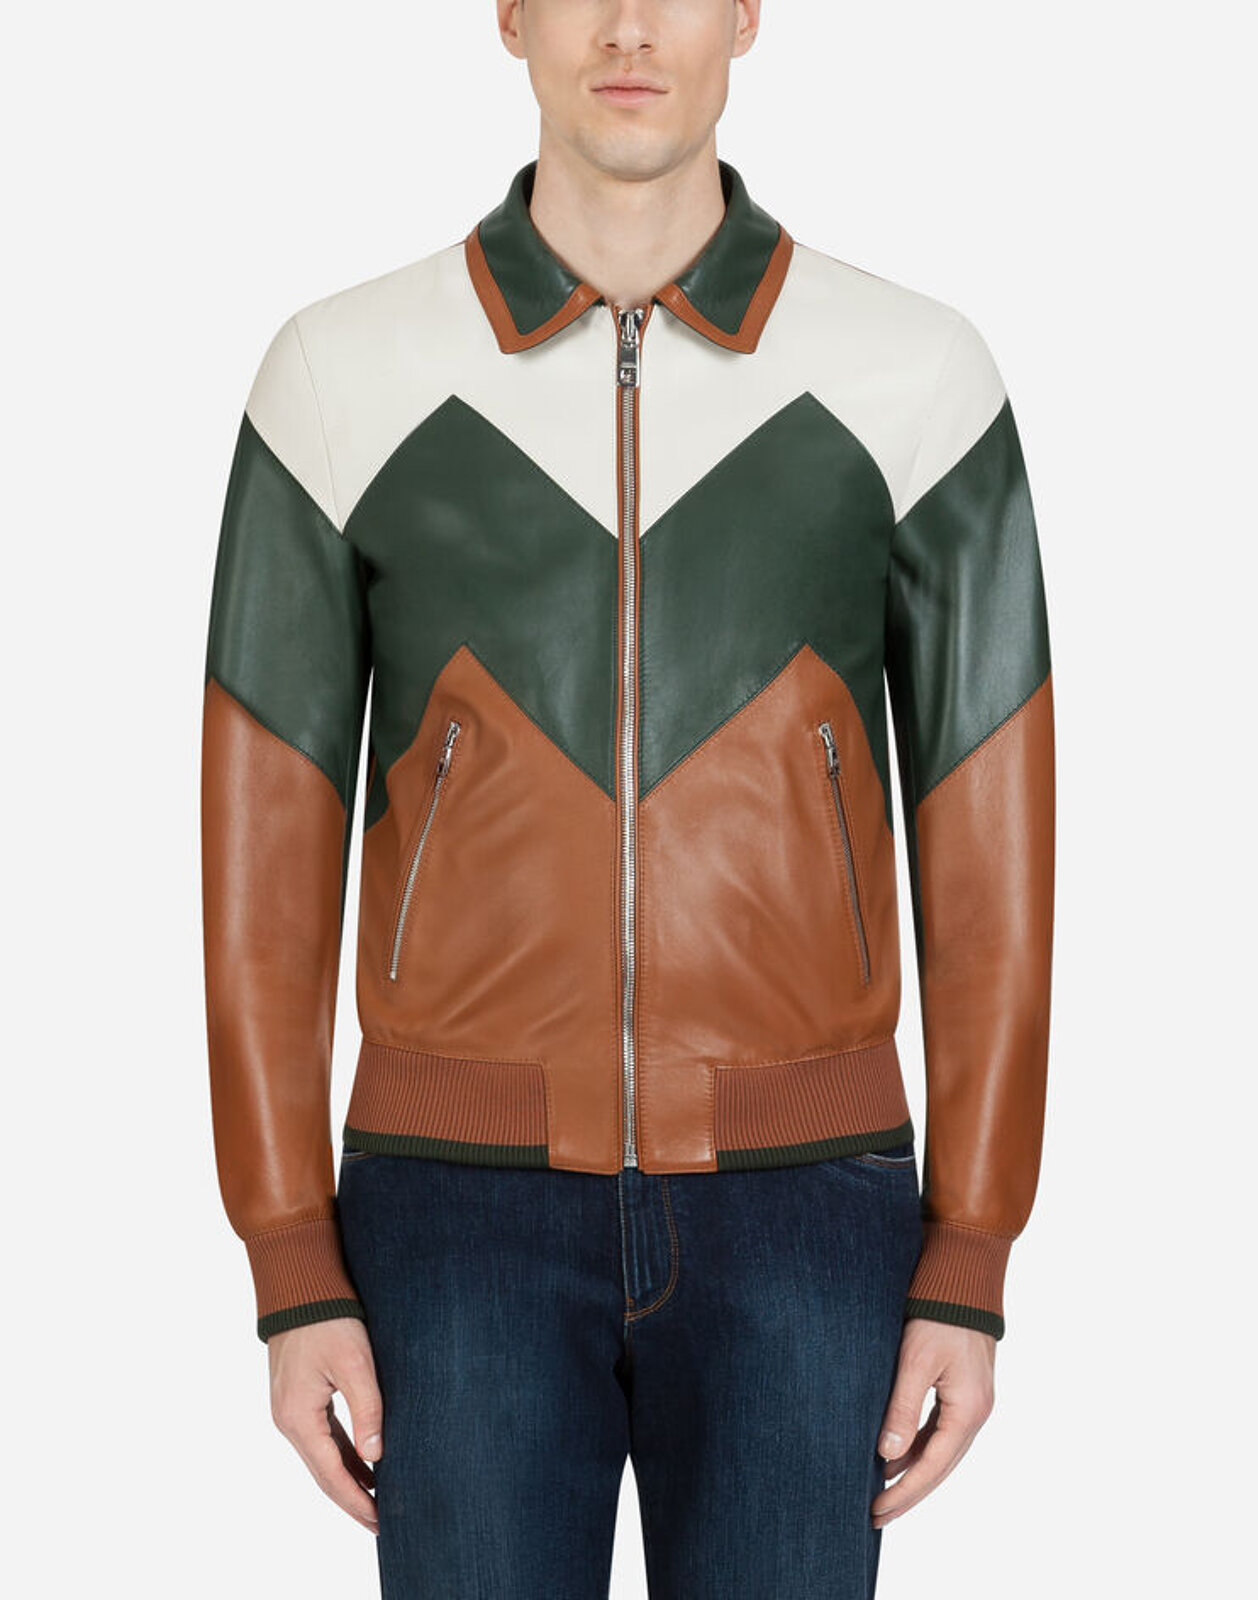 Multicolored Leather Jacket - Dolce & Gabbana